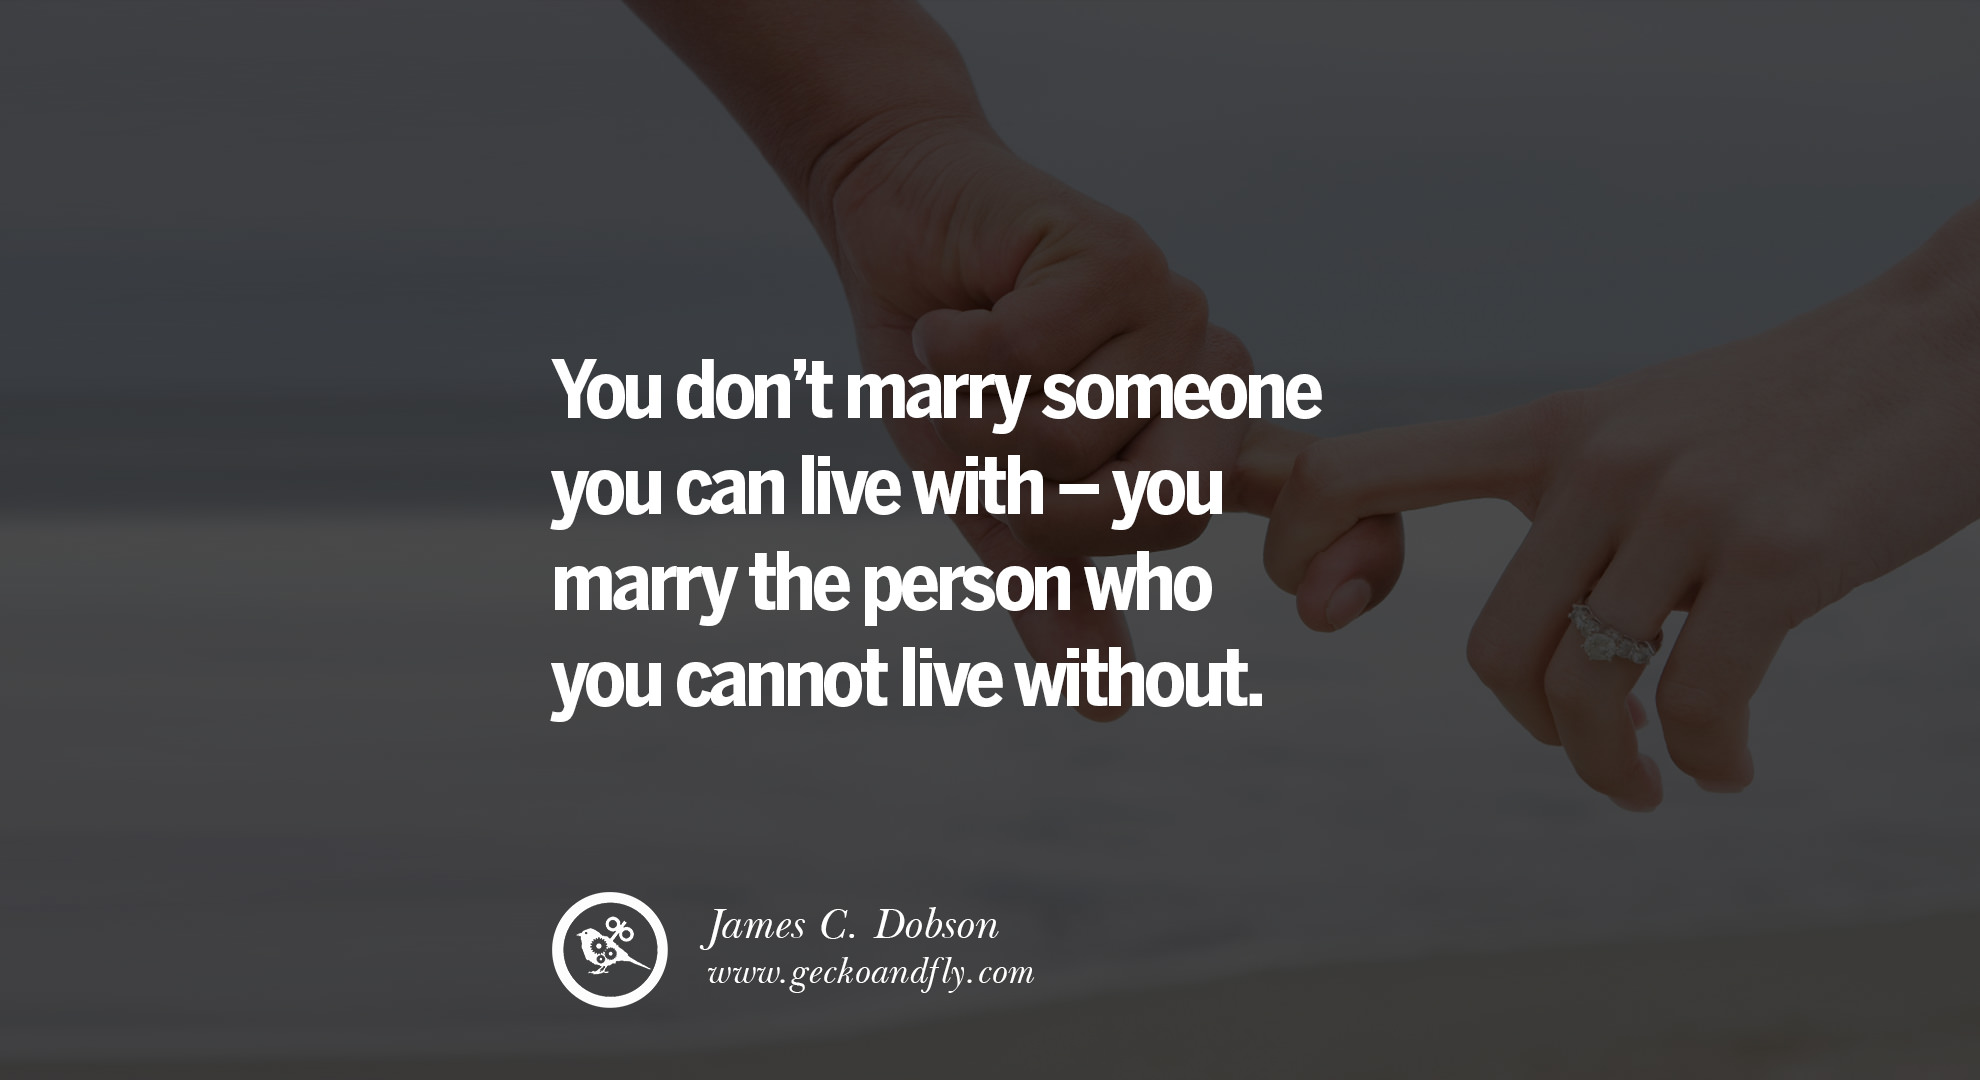 Bible Quotes On Love And Marriage 40 Romantic Quotes About Love Life Marriage And Relationships